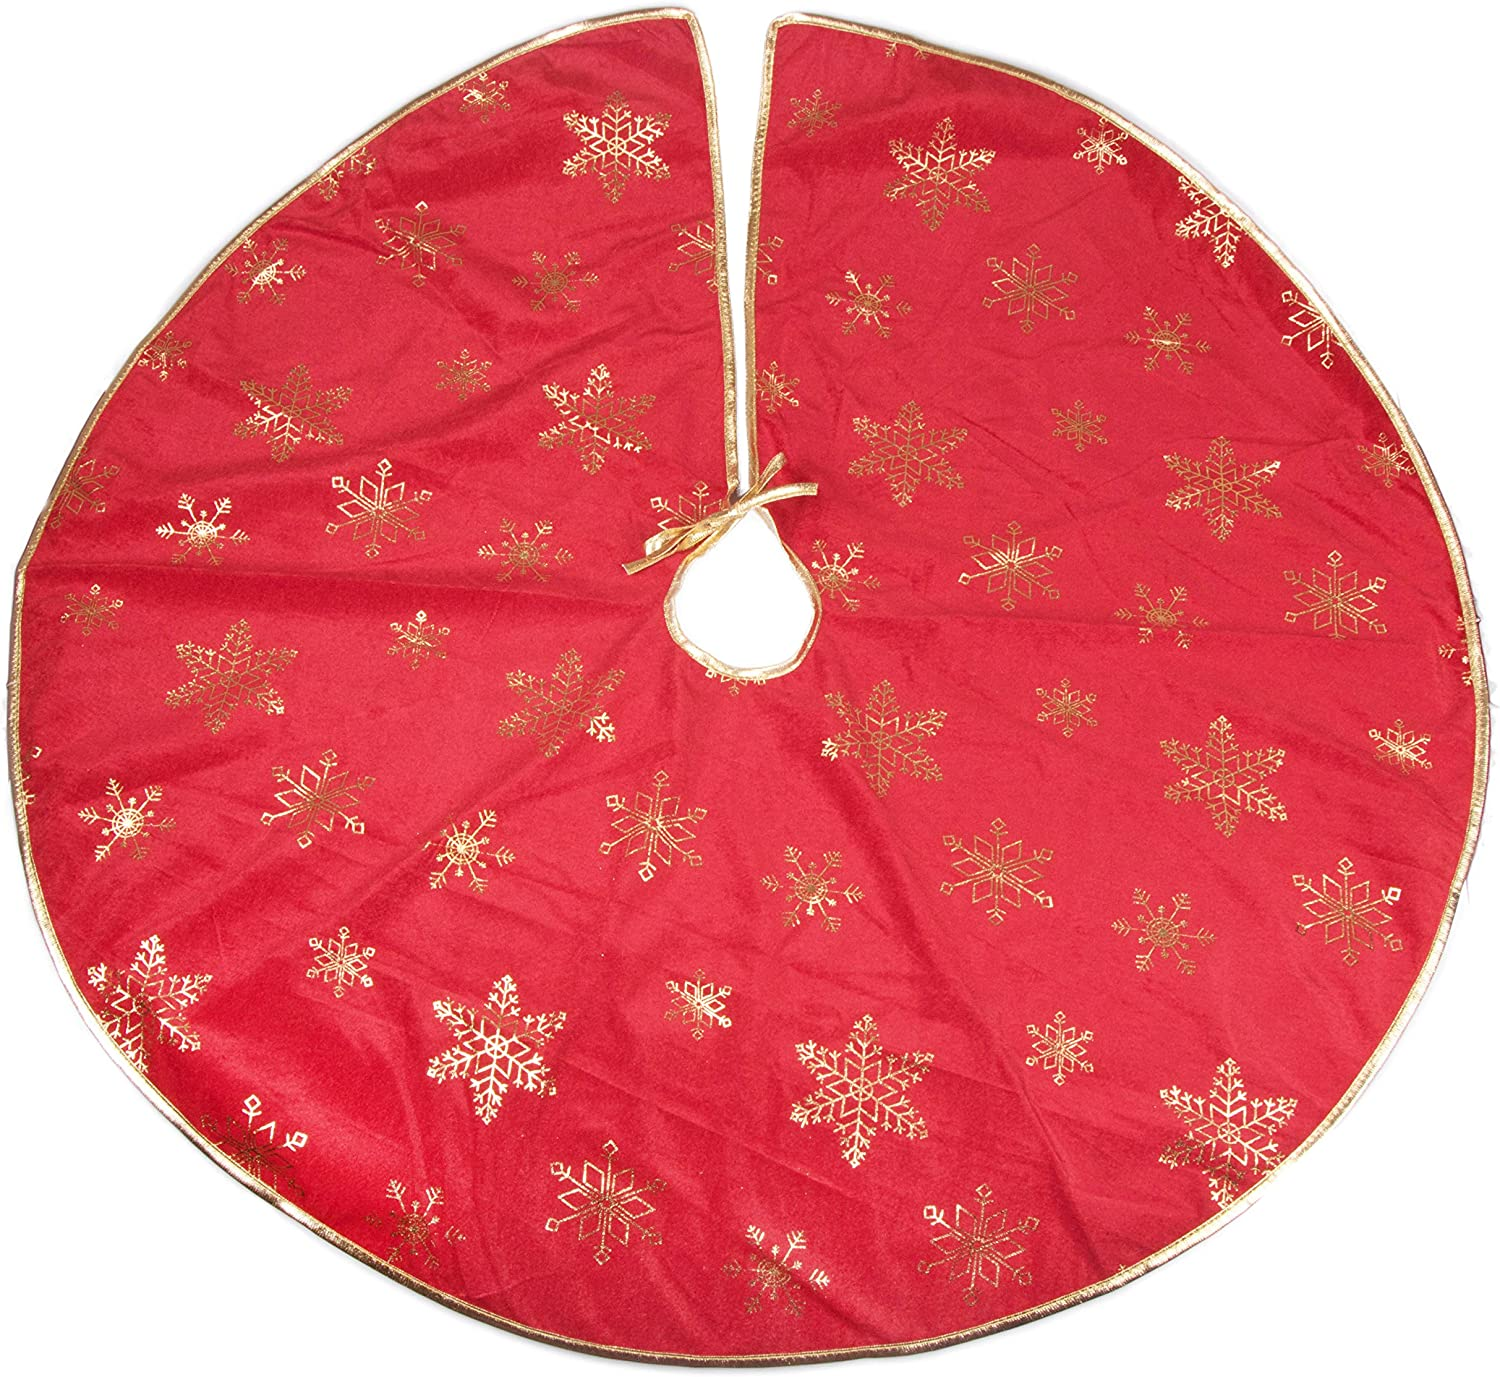 Clever Creations Red and White Christmas Tree Skirt Design with Santa and Snowman Perfect for Any Size Tree Classic Holiday Decor Catches Falling Needles Aids in Cleanup 42 Diameter